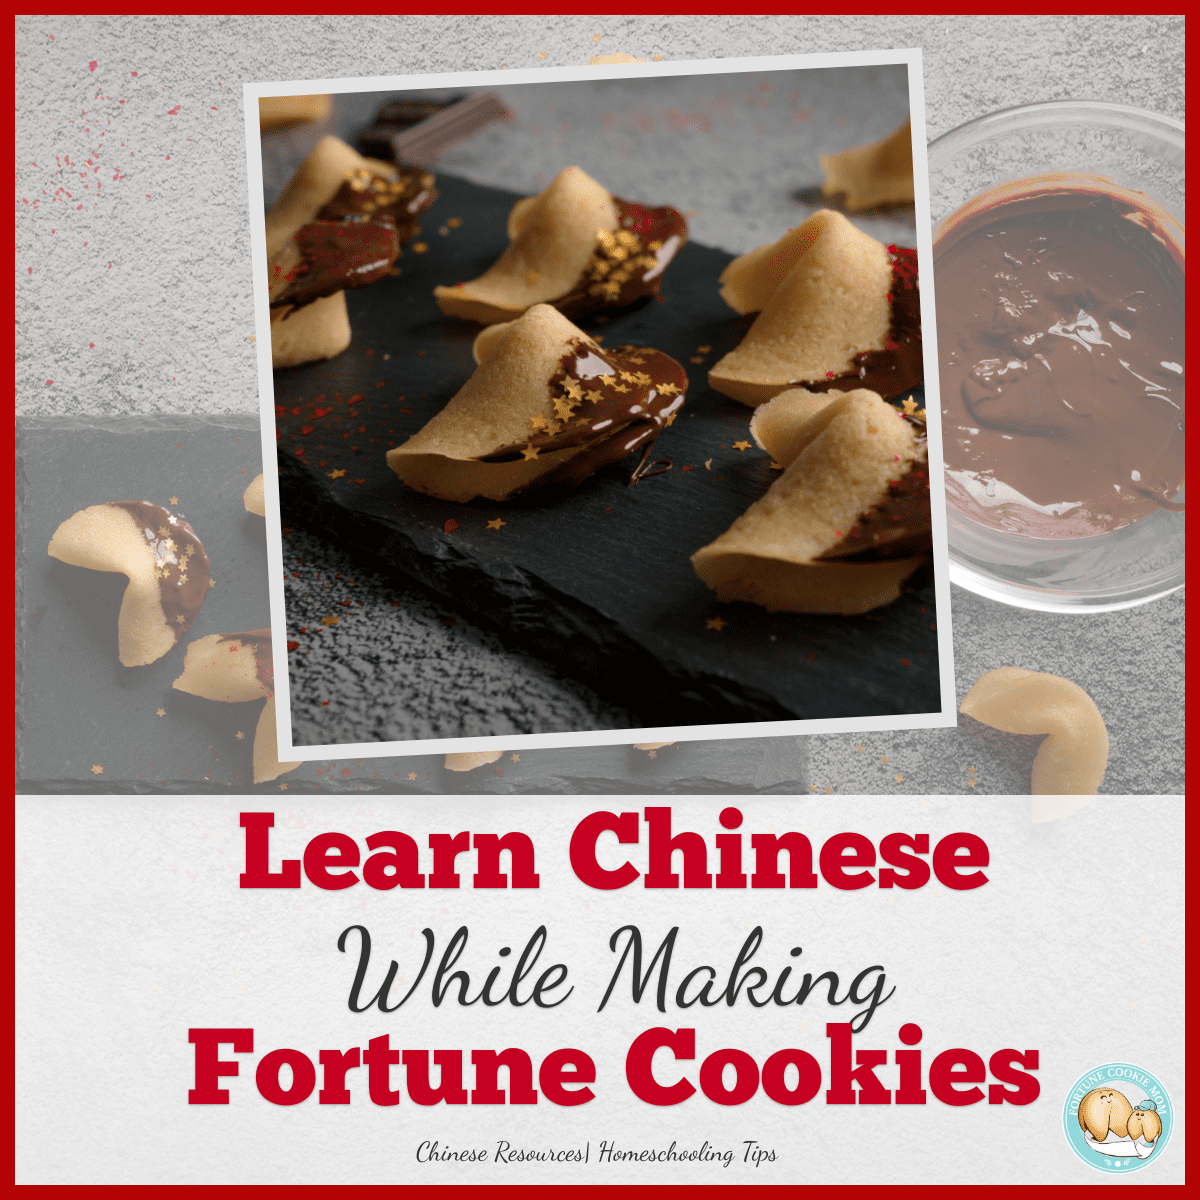 Learn Chinese While Making Homemade Fortune Cookies with Kids